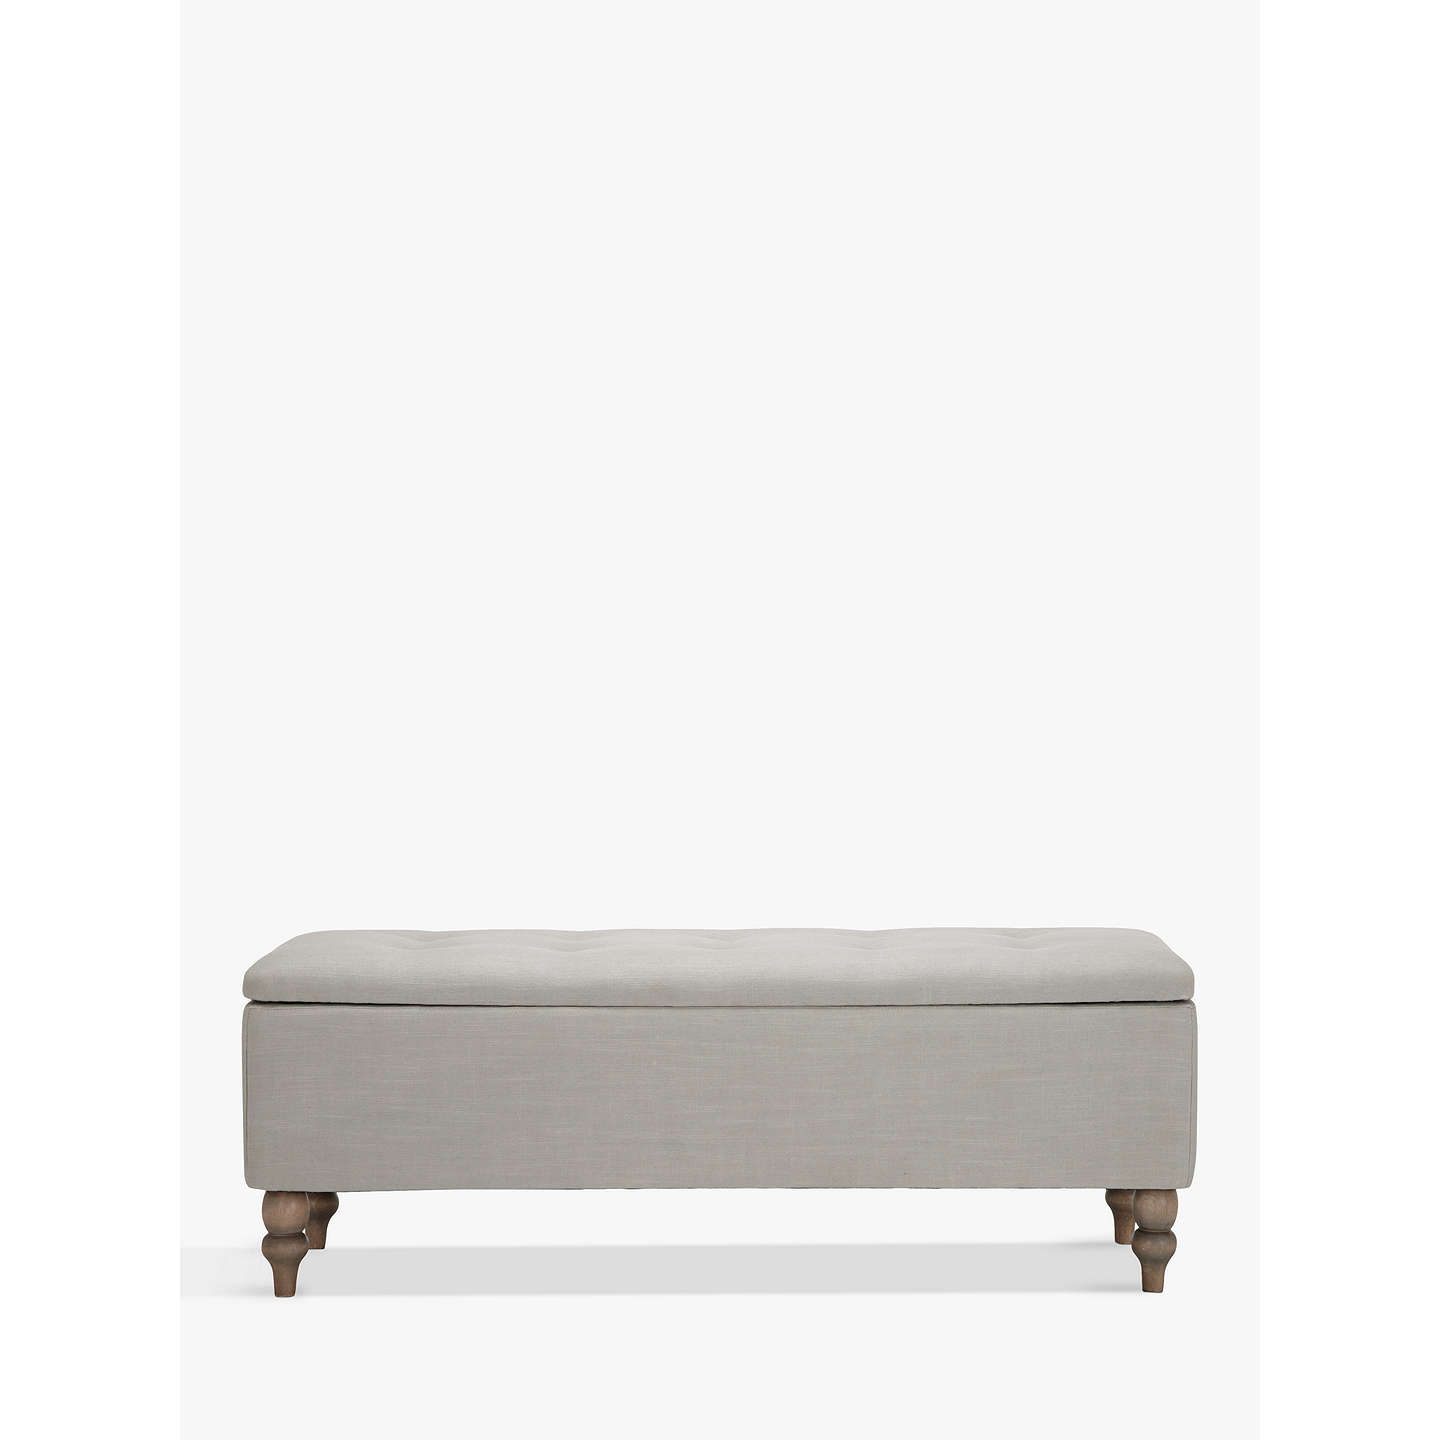 BuyCroft Collection Skye Ottoman Blanket Box, Grey Online at johnlewis.com